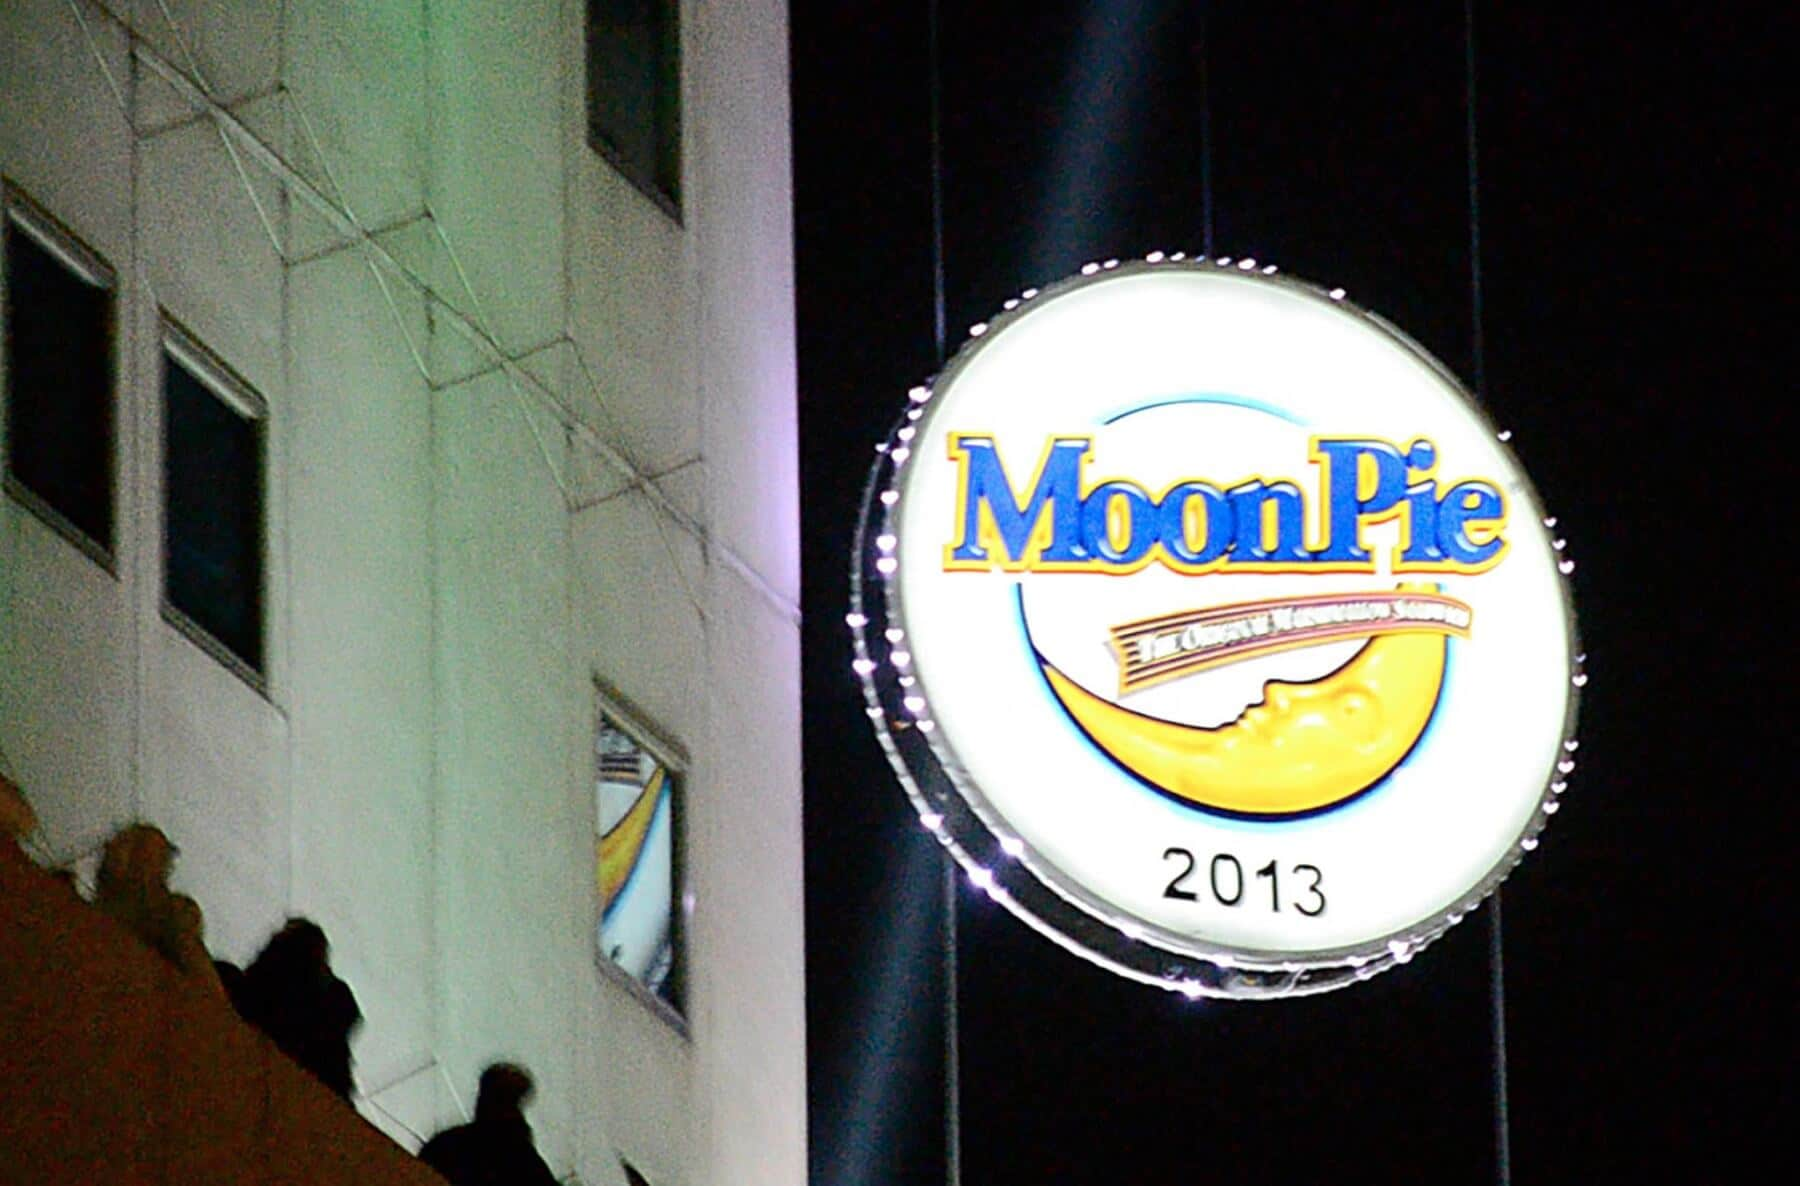 Crowd at MoonPie Over Mobile possibly smaller this year